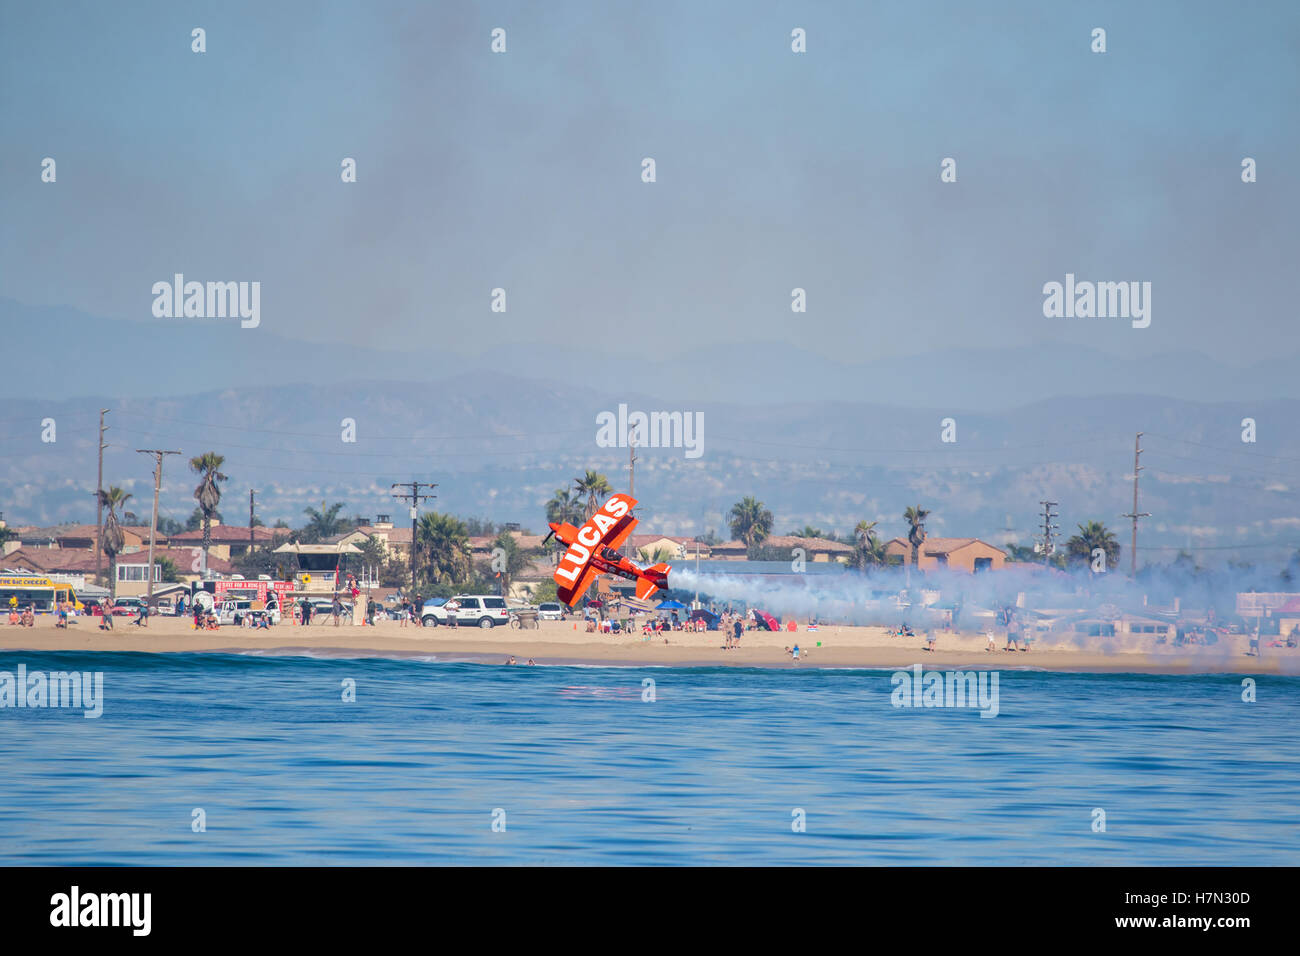 Huntington Beach  air show Lucas oil aerobatics stunt plane flies along the waters edge in front of a crowd of spectators - Stock Image